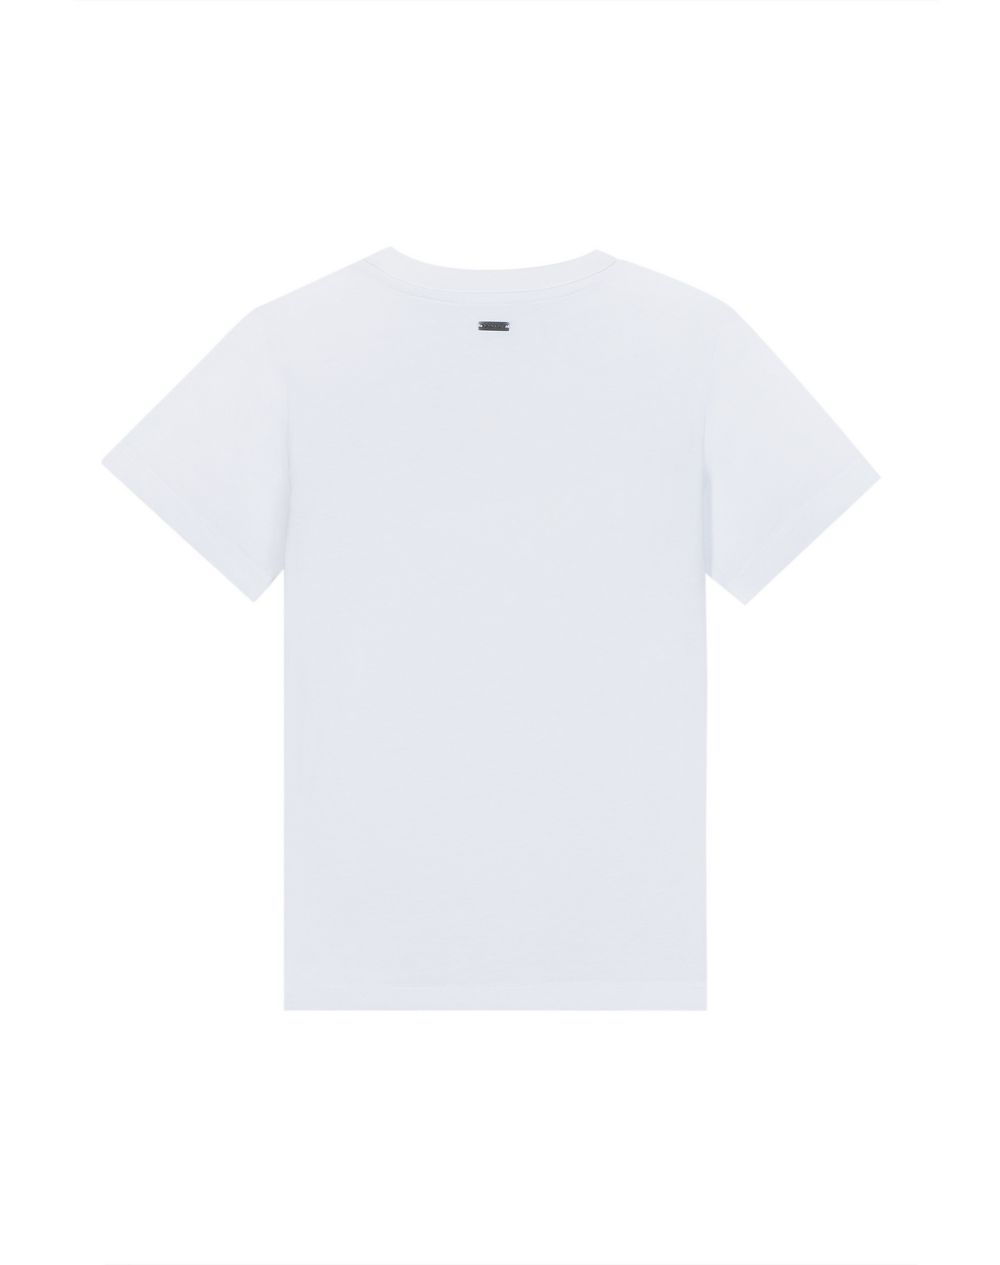 "WHITE ""LANVIN CROSS-OUT"" T-SHIRT - Lanvin"